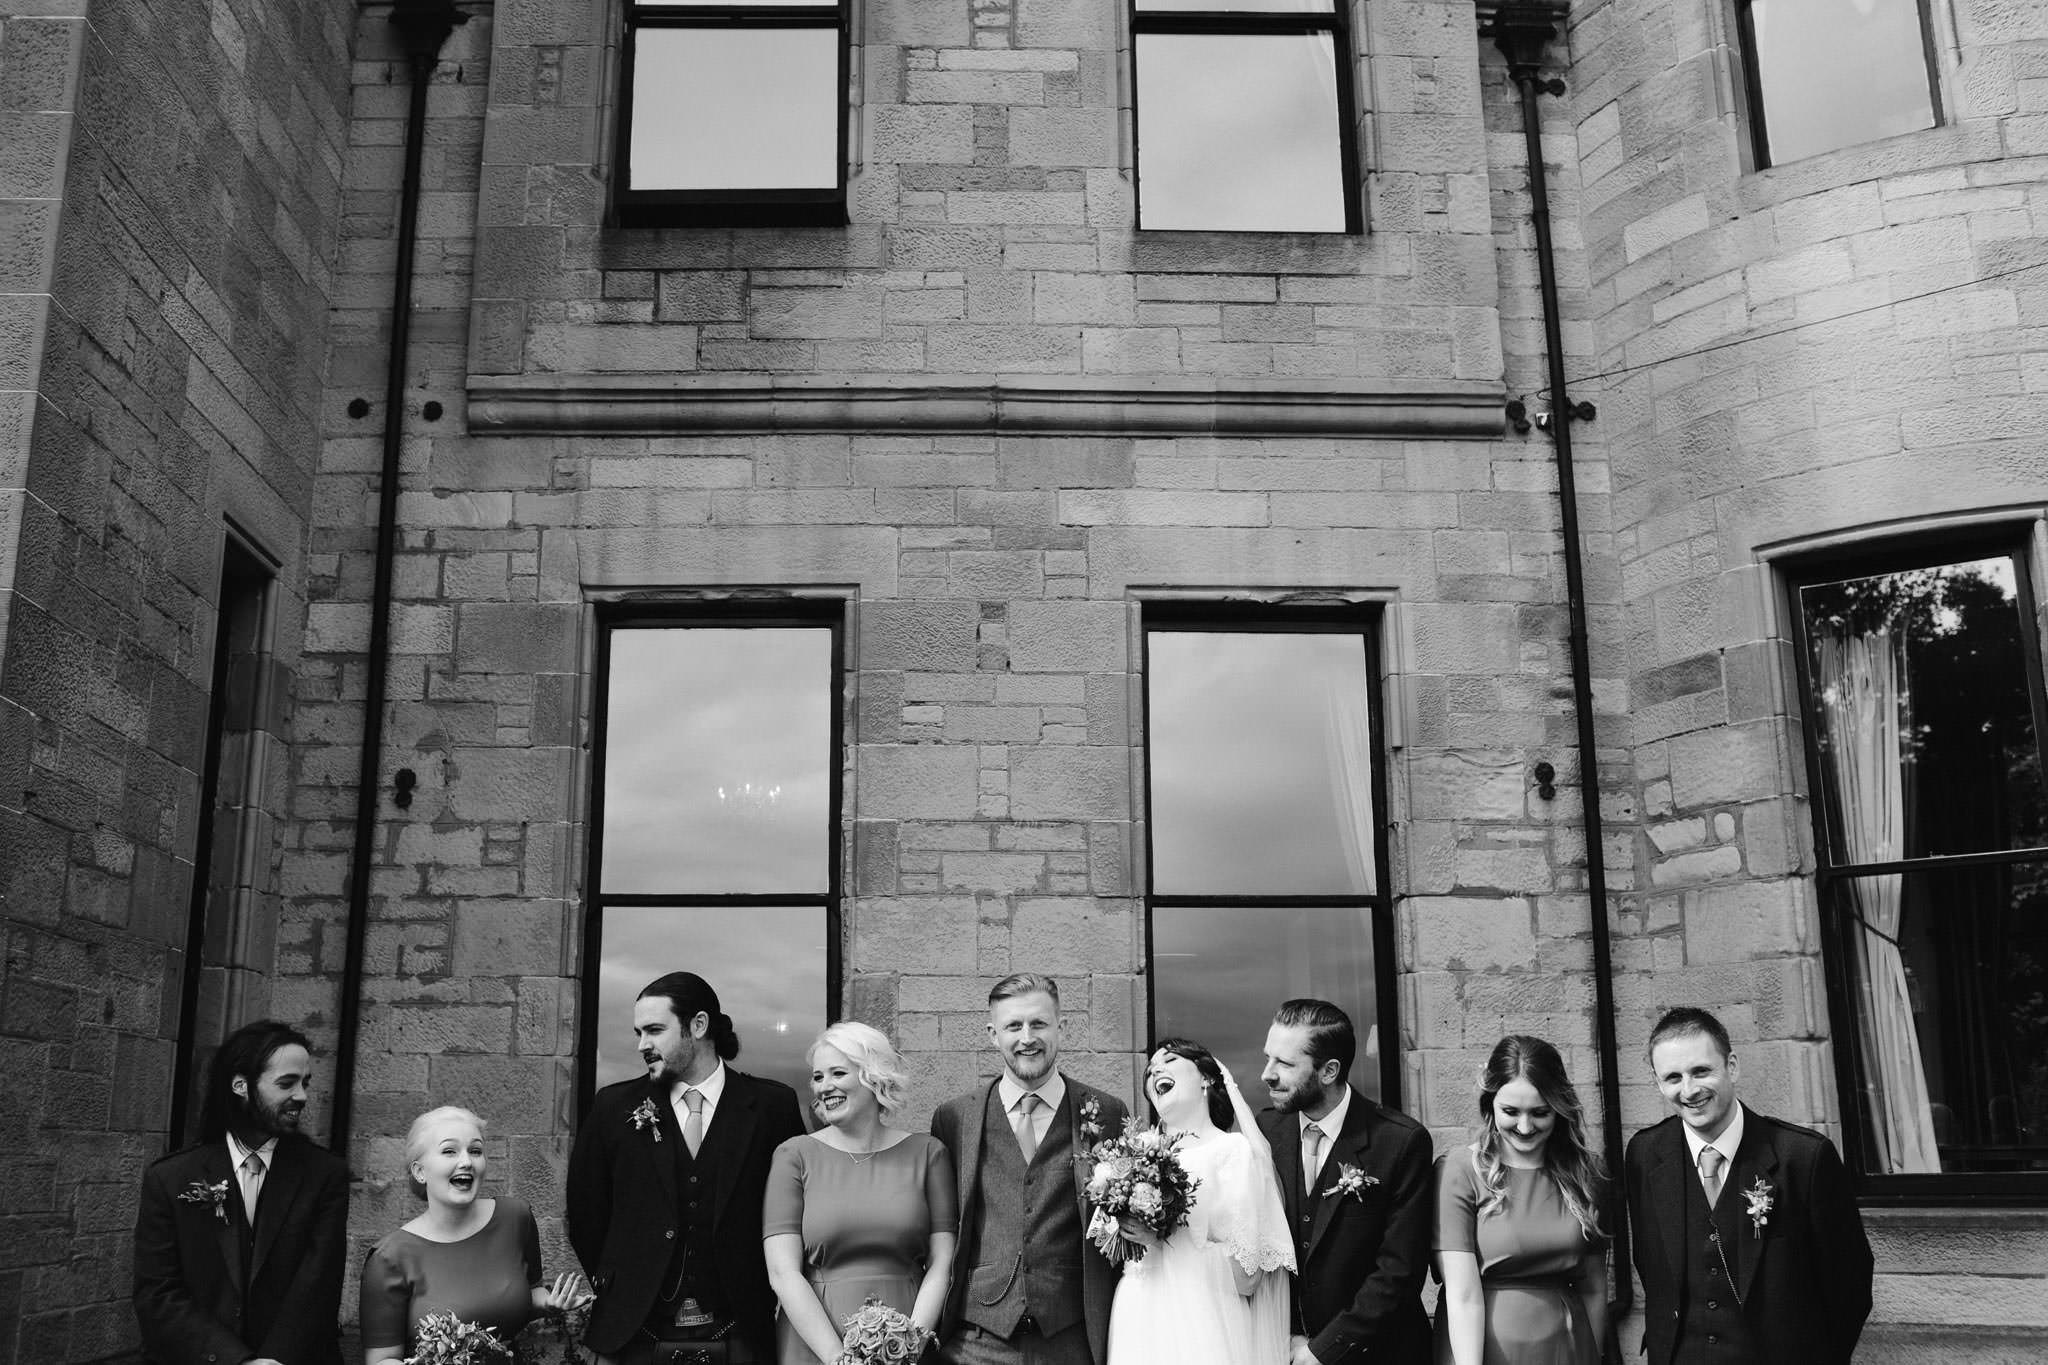 scottish-wedding-photographer-096